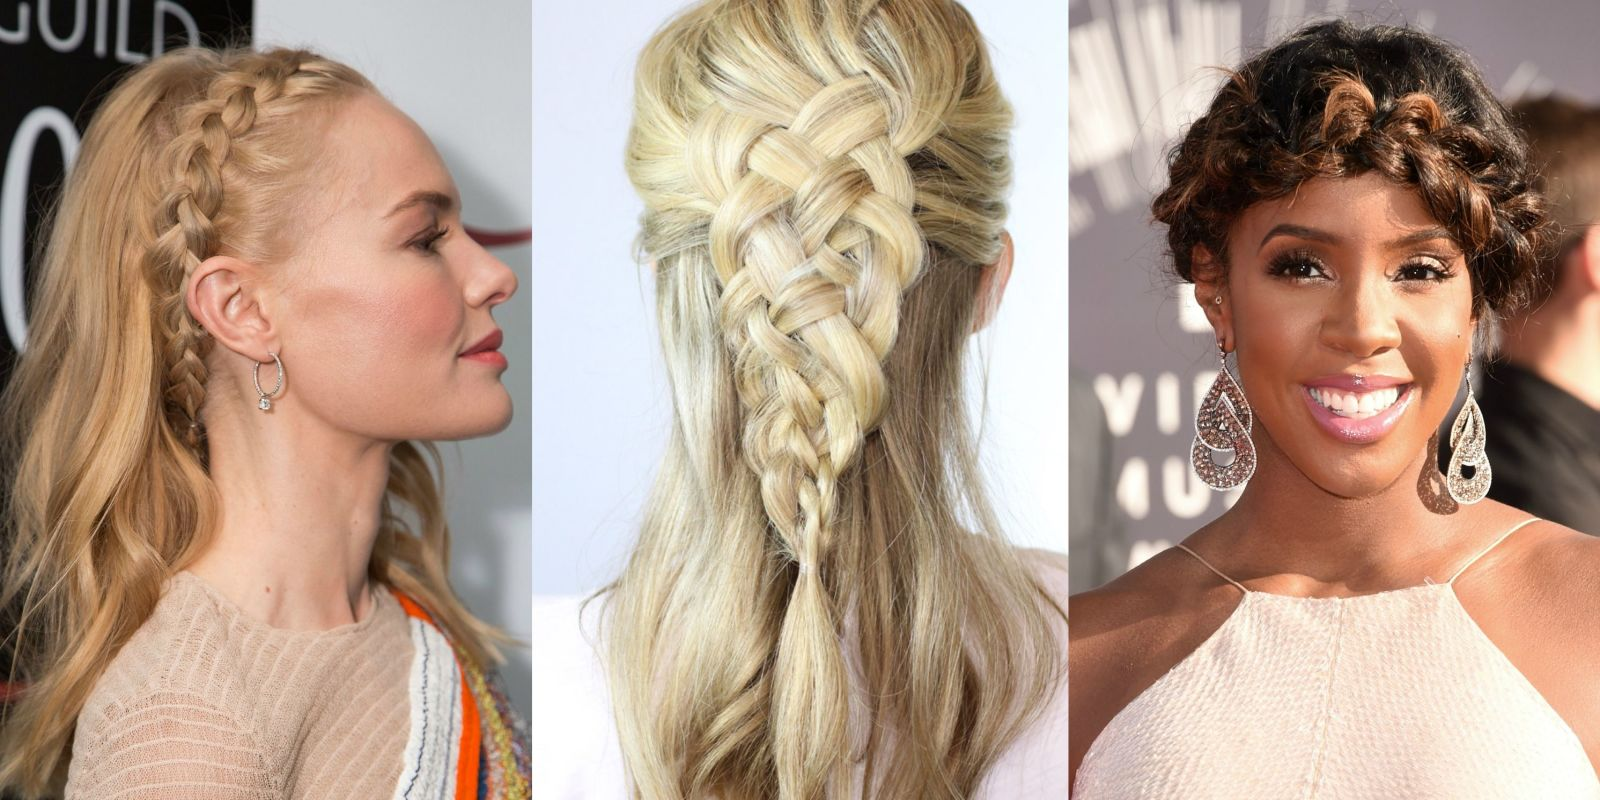 Remarkable 60 Braided Hairstyles Braids Inspiration Amp How To39S Hairstyles For Men Maxibearus